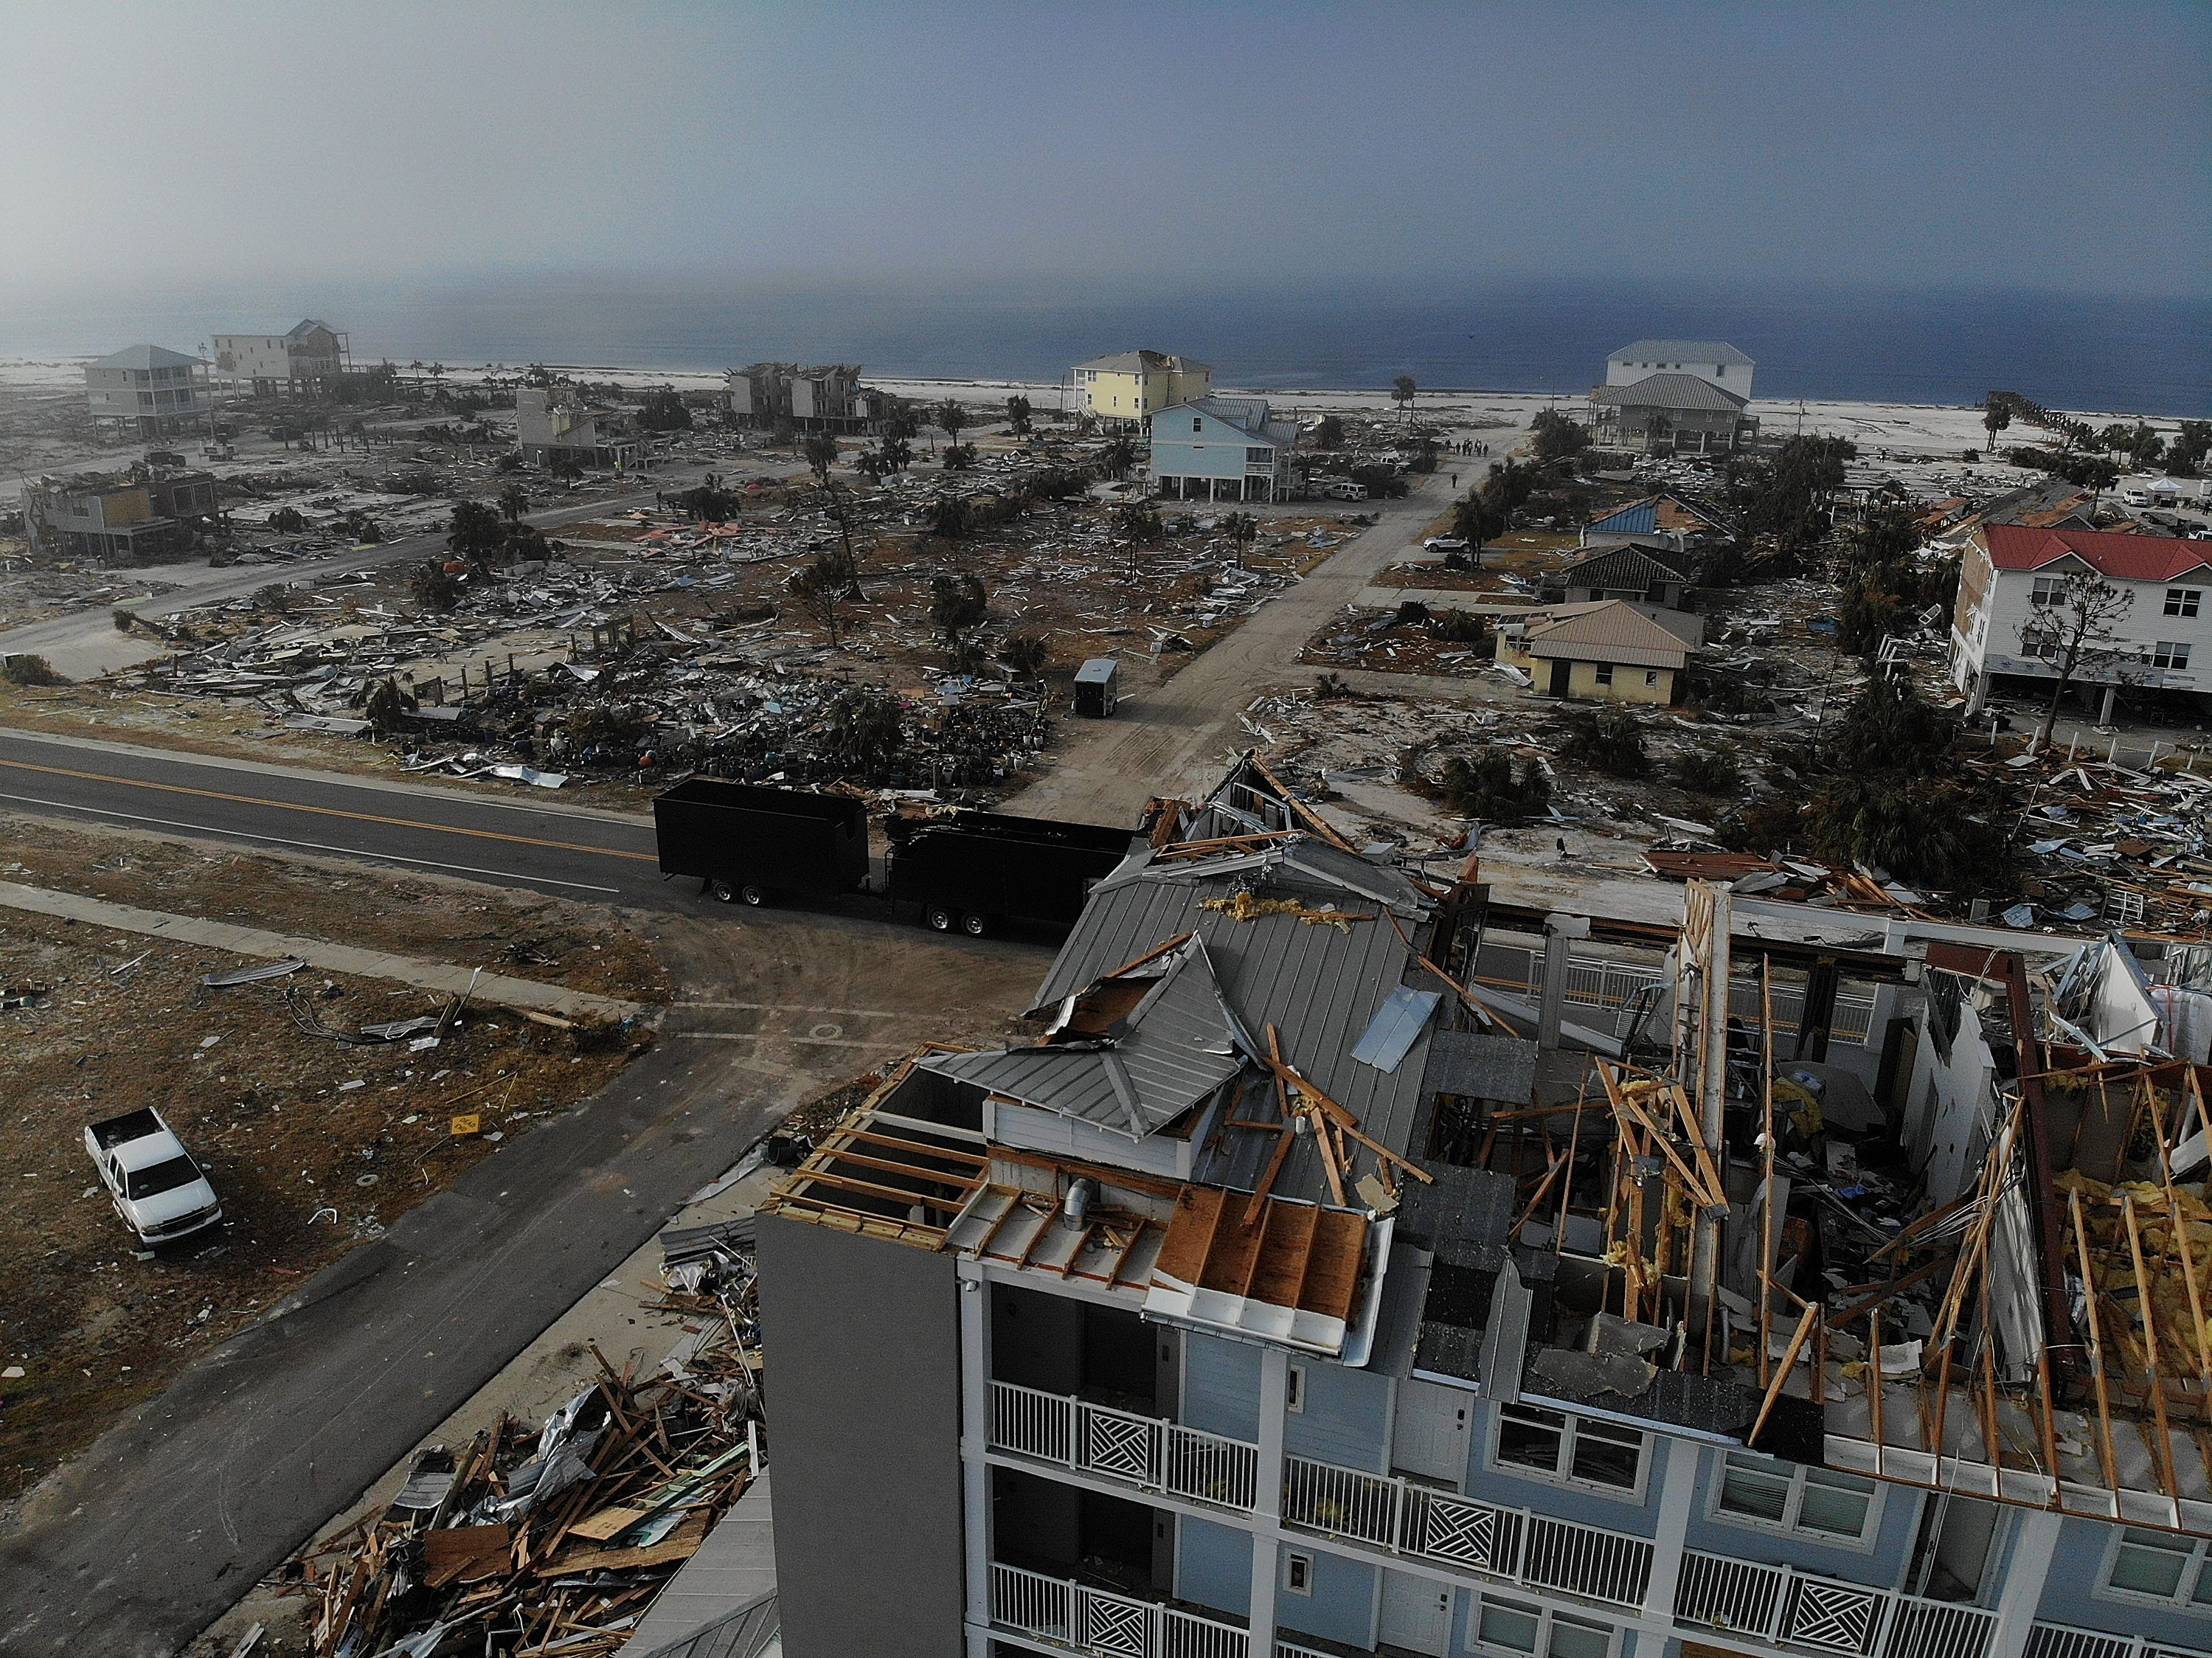 Hurricane Michael left almost total devastation on Oct. 17, 2018 in Mexico Beach, Fla.